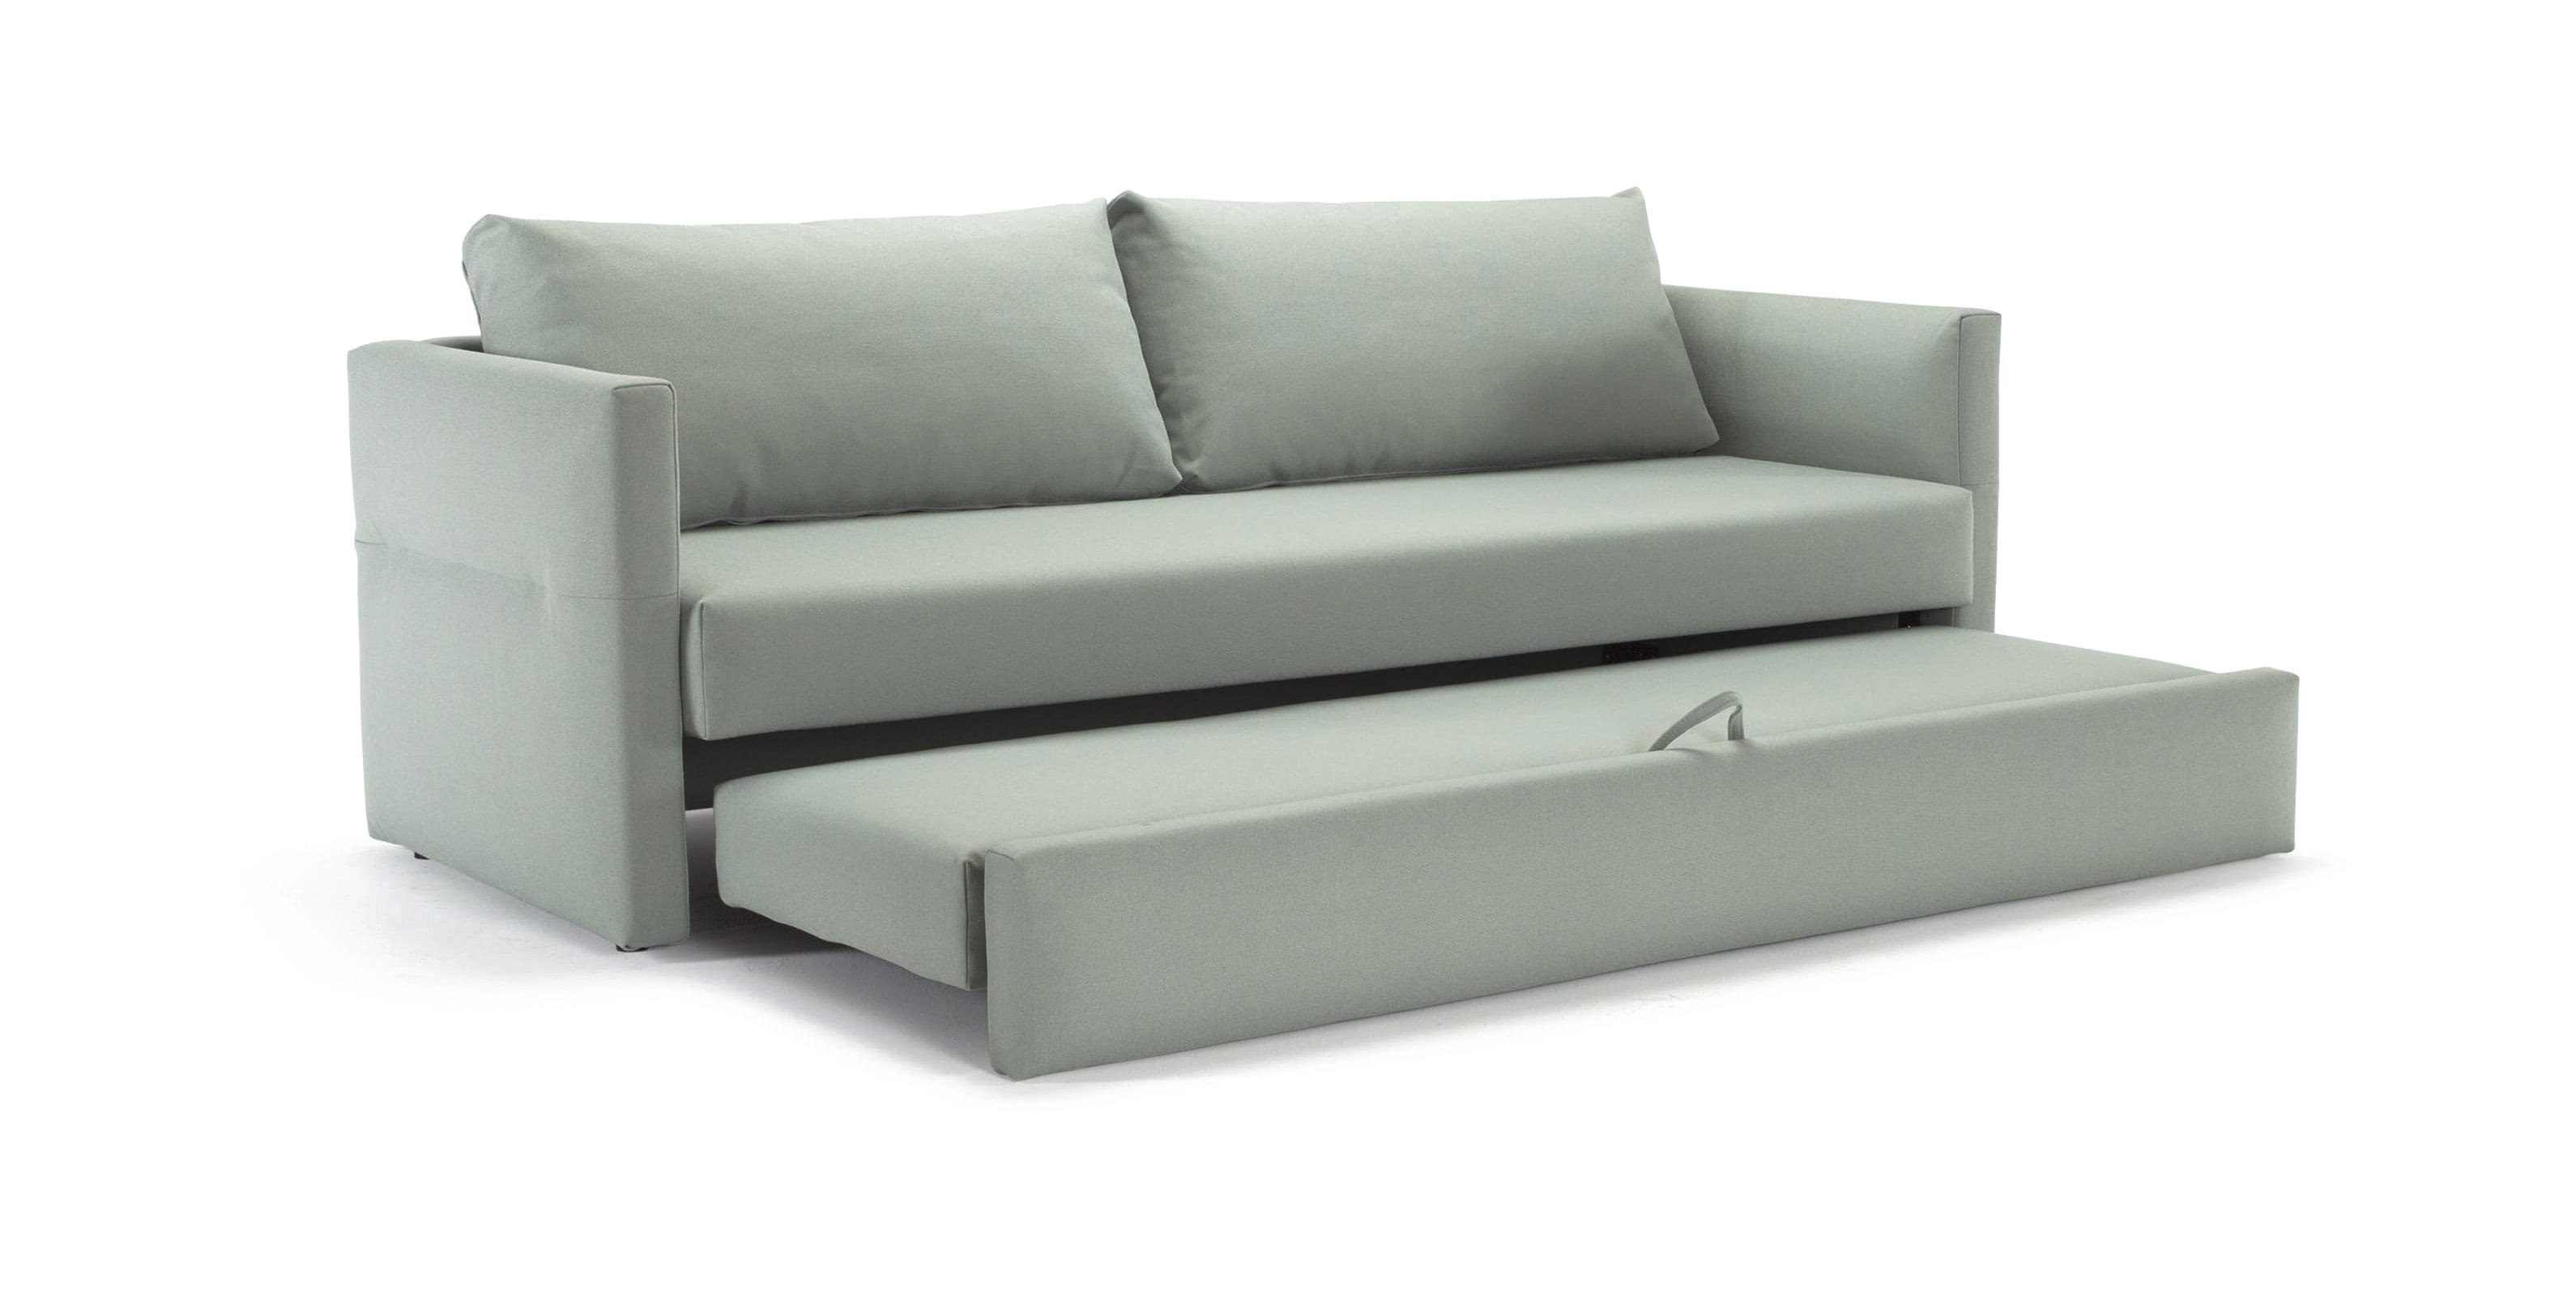 Toke Sofa Bed Full Size Coastal Nordic Sky By Innovation